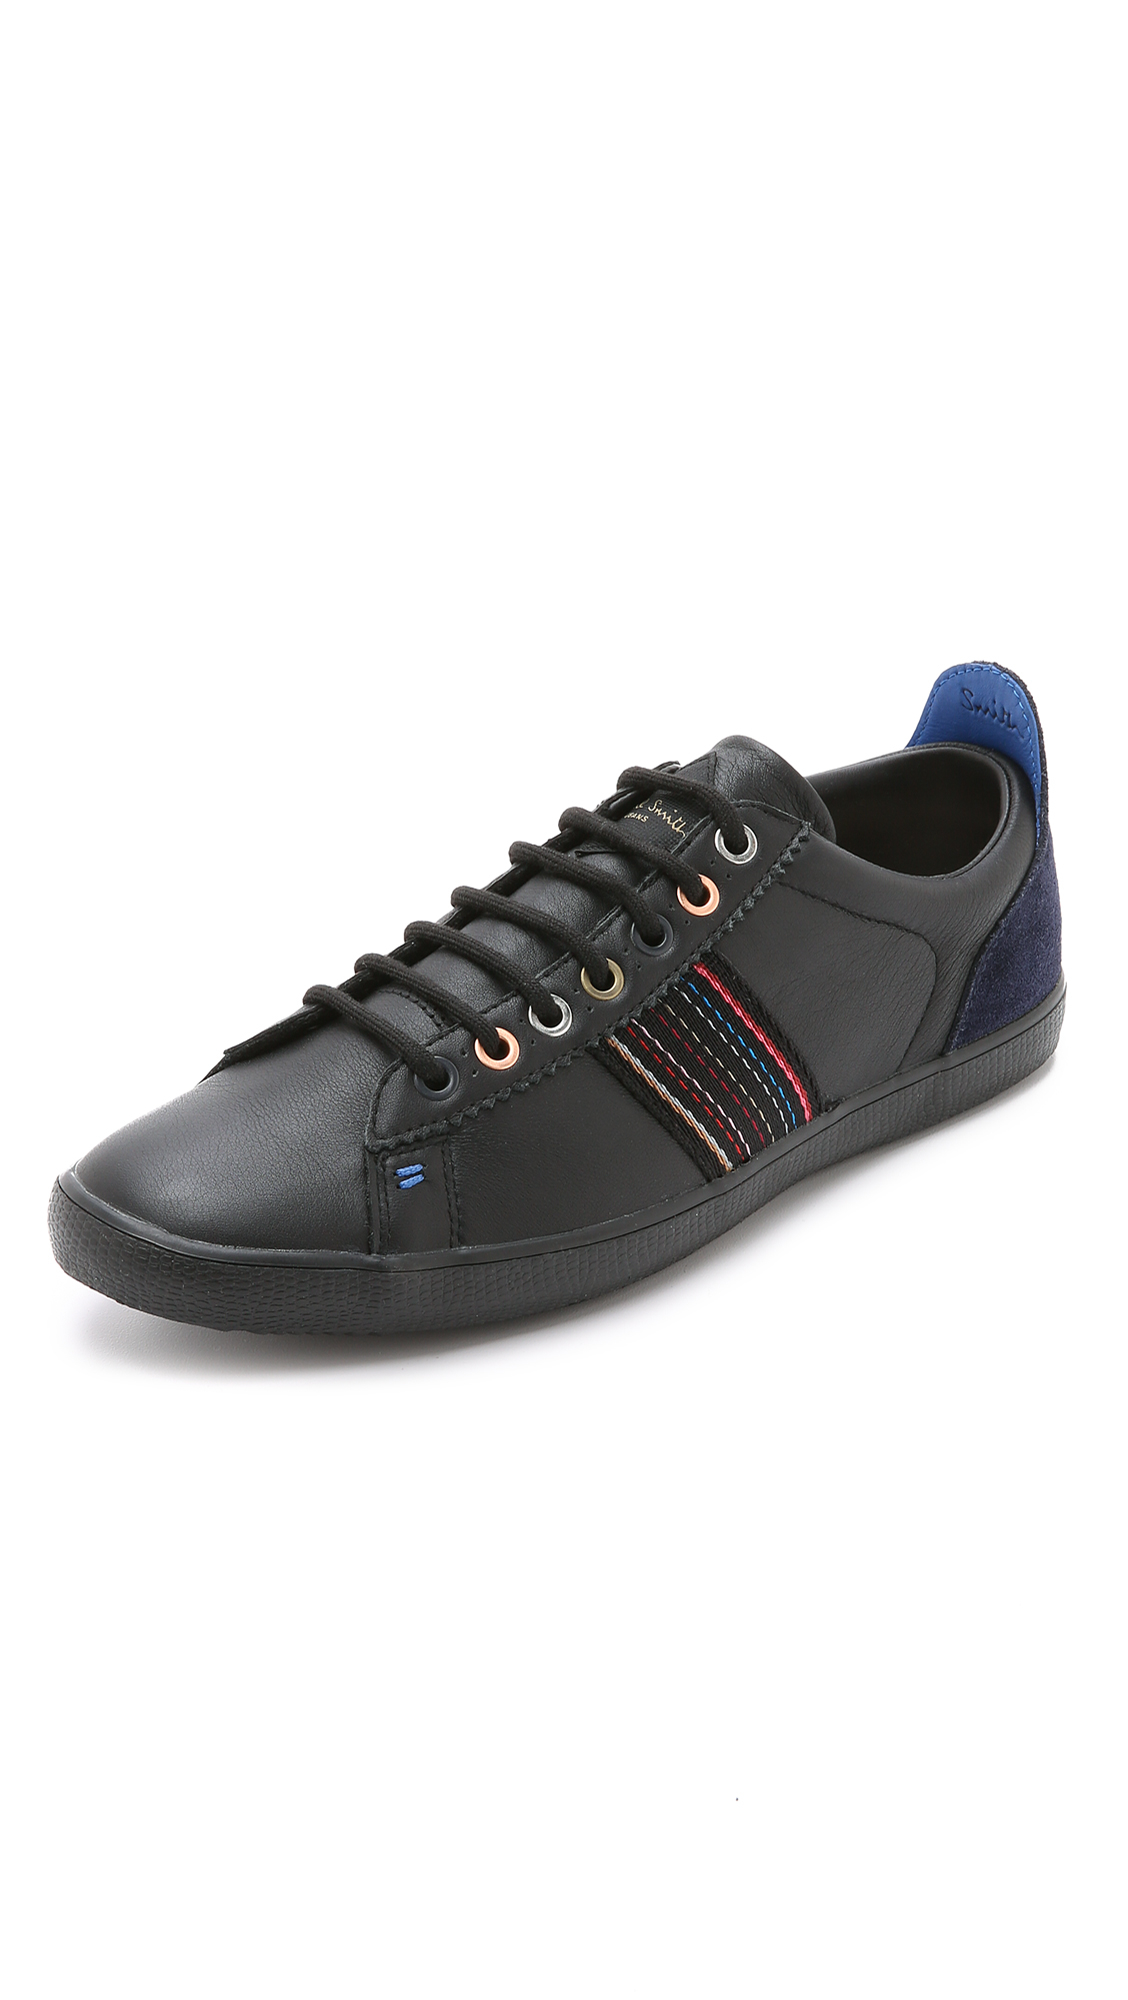 Paul Smith Osmo Sneakers In Black For Men Lyst